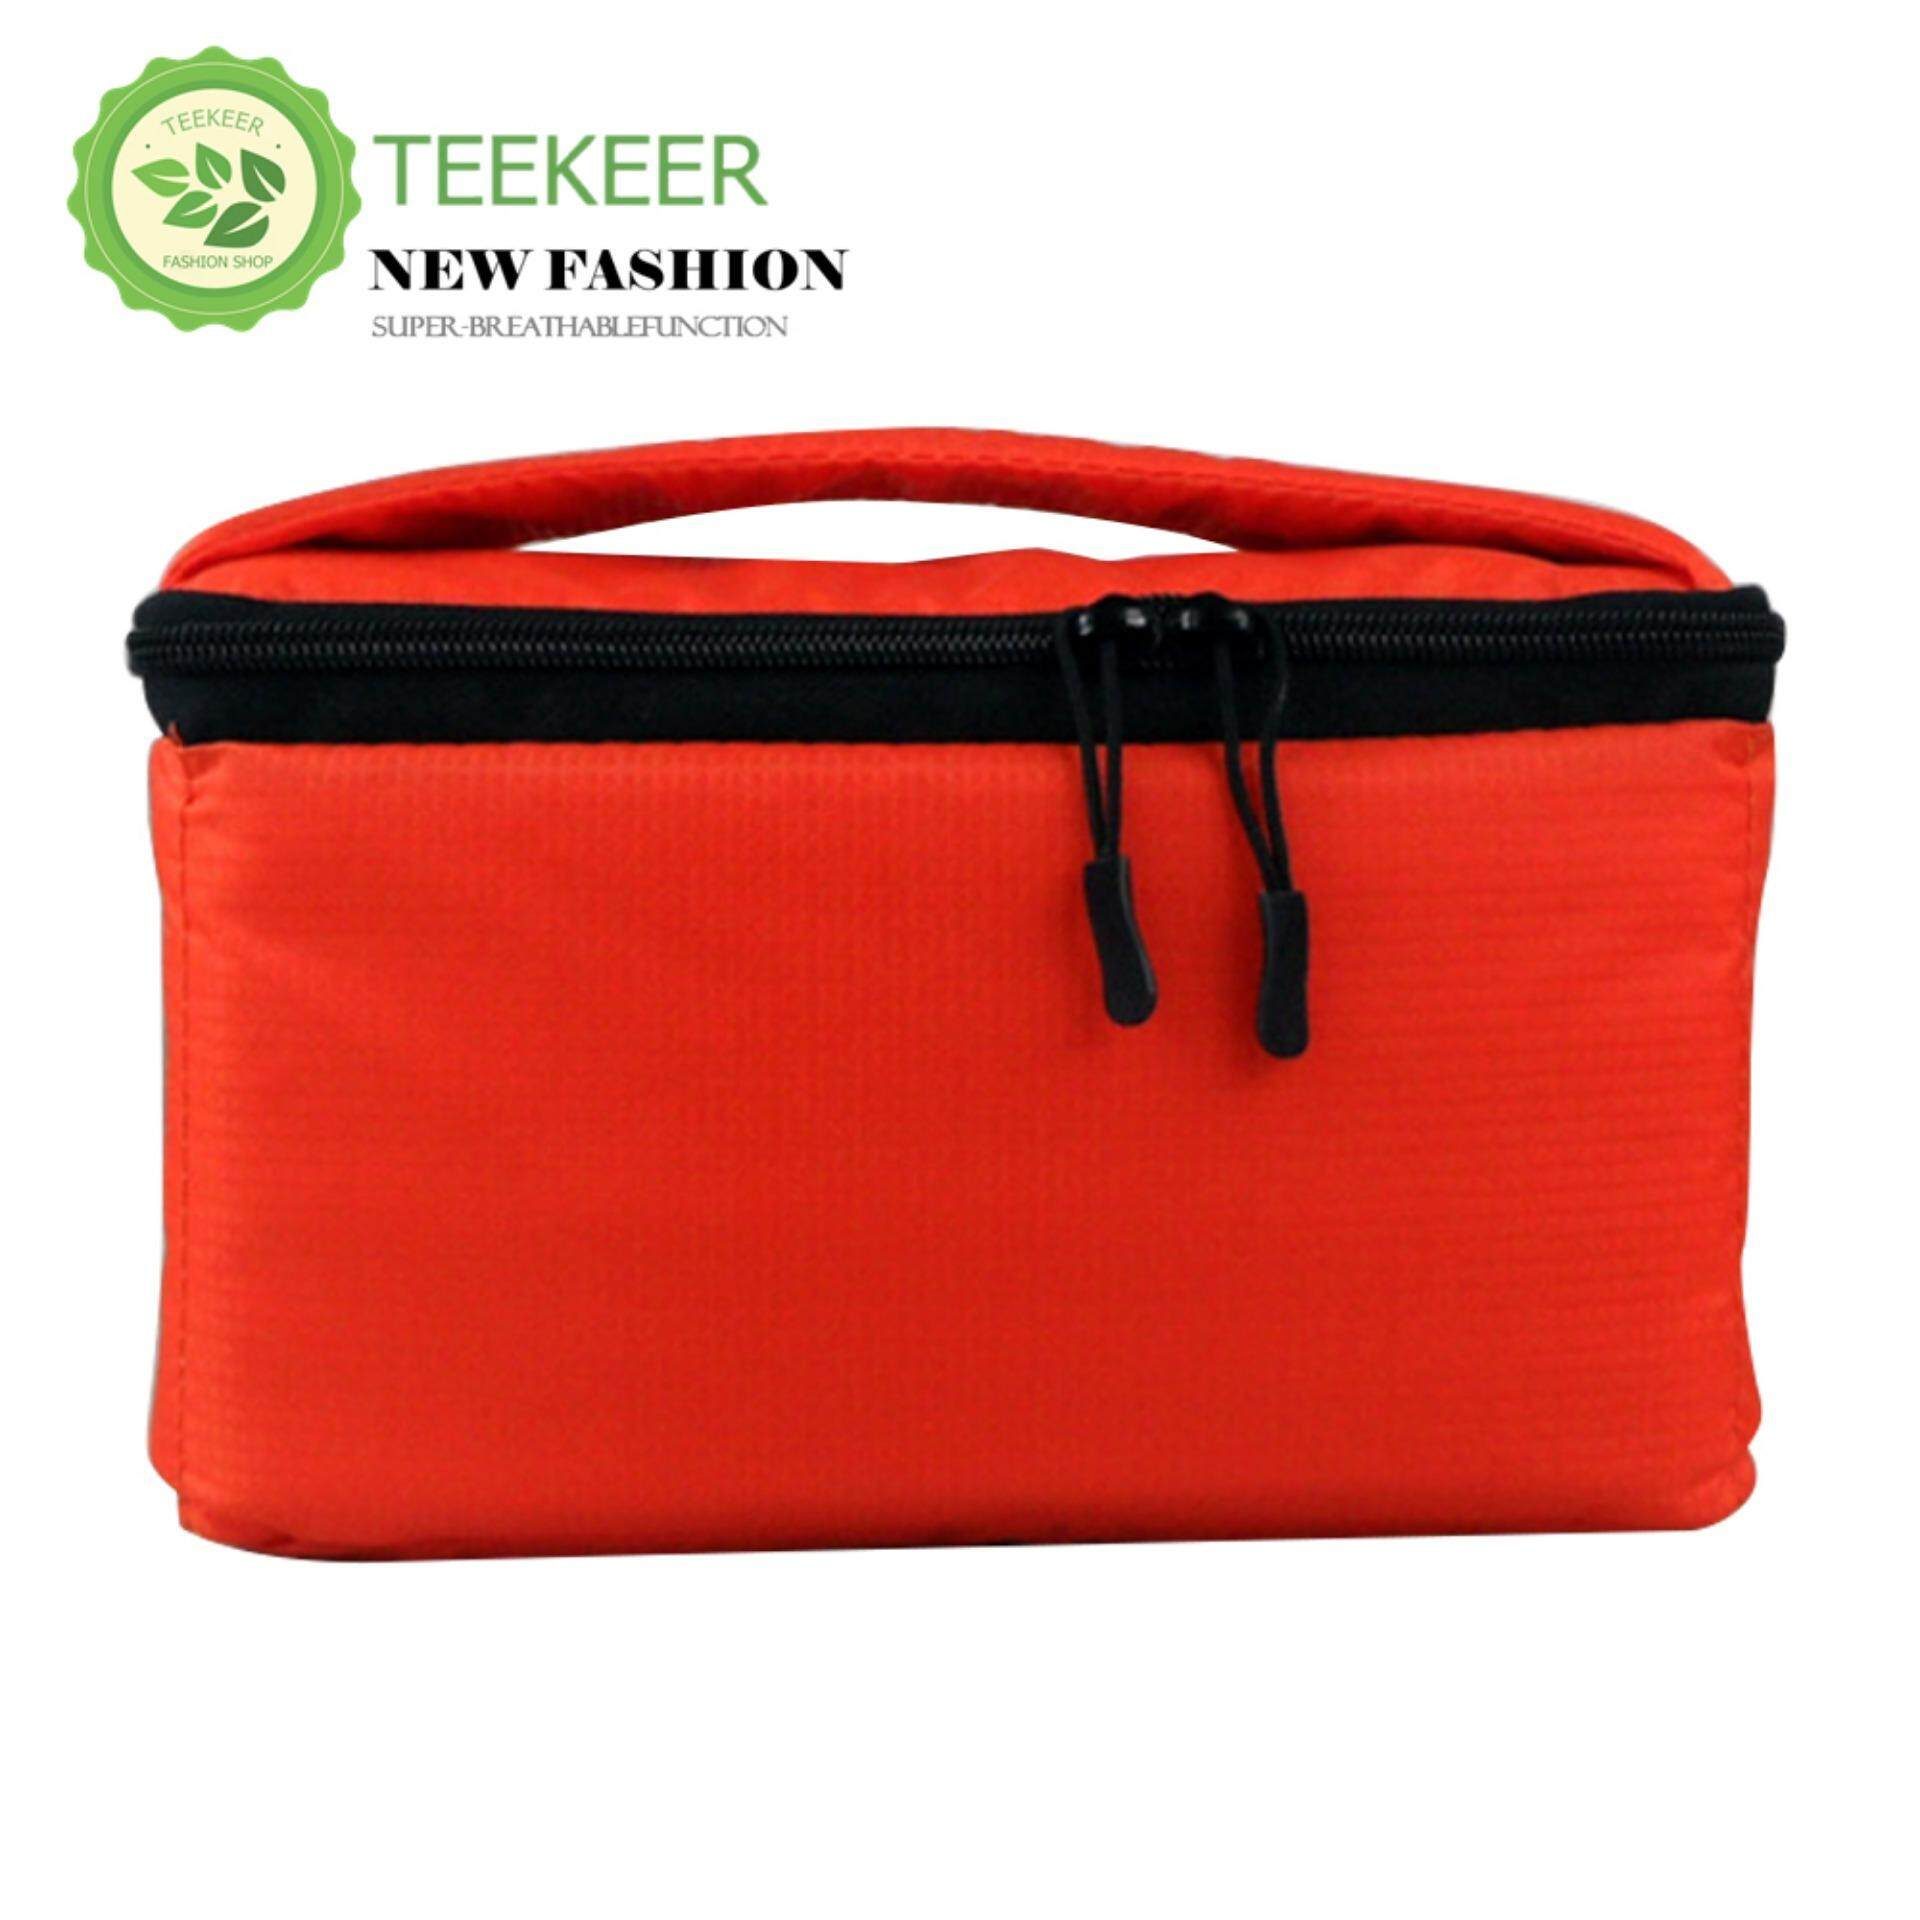 Teekeer DSLR Camera Insert Case Shockproof Waterproof Padded Partition Protective Bag Cover Travel For Sony Canon Nikon Olympus Pentax And More (Orange)